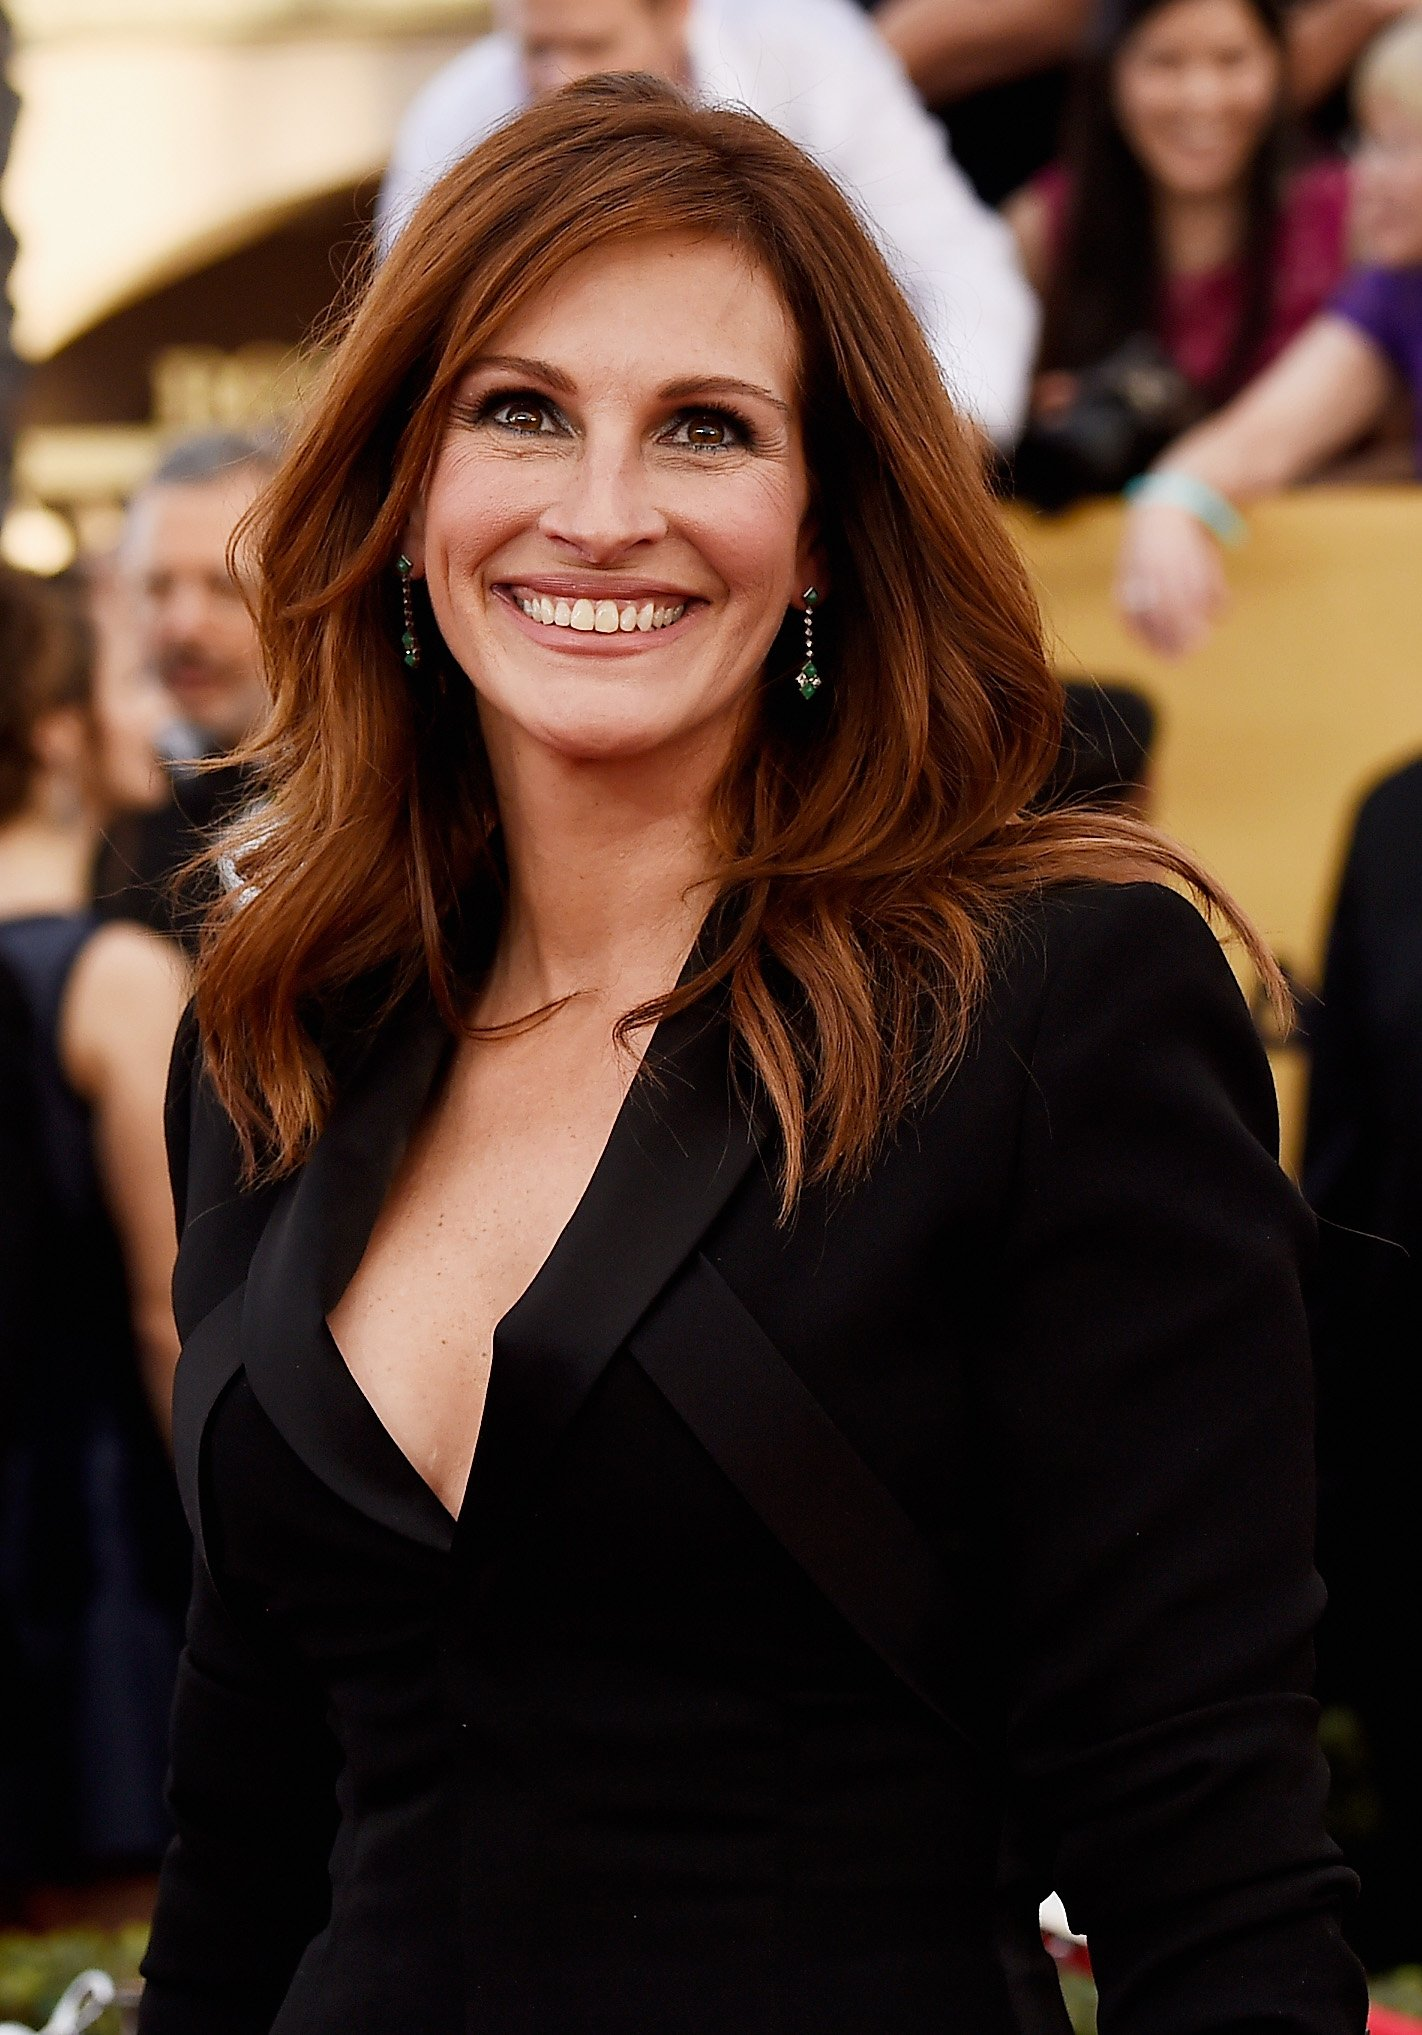 Julia Roberts. | Source: Getty Images